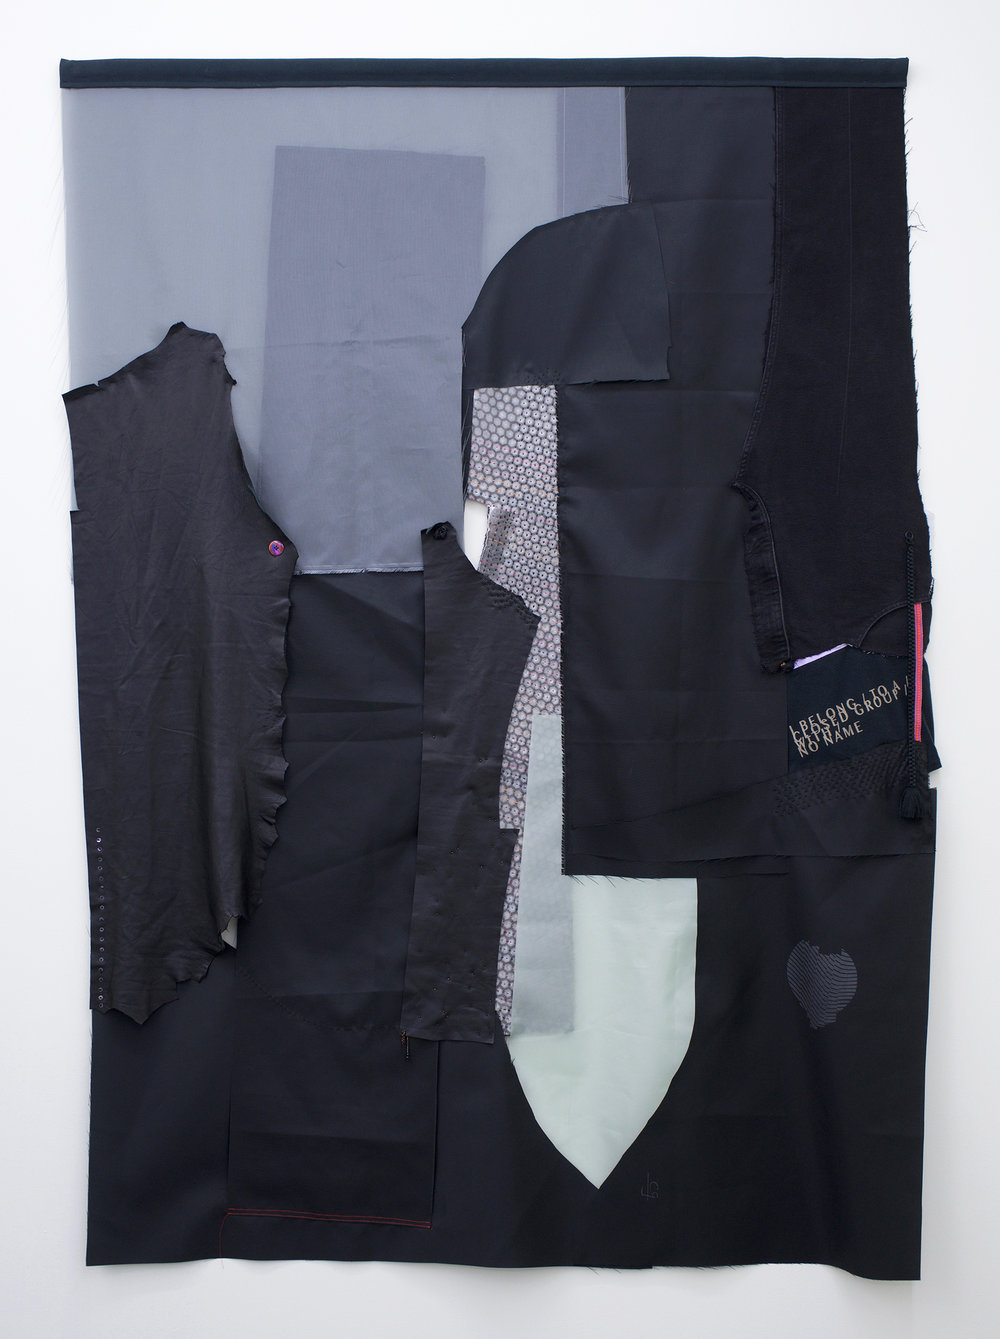 "AMANDA CURRERI I Belong to a Closed Group With No Name*, 2018 Recycled flag nylon, leather, cotton with rice paste resist and soot/soya printing, sequins, thread, inkle weaving, vintage Japanese braid, and canvas with grommets, 72 x 48"" *Title is from a T-shirt in the Samois archive at the GLBT Historical Society."